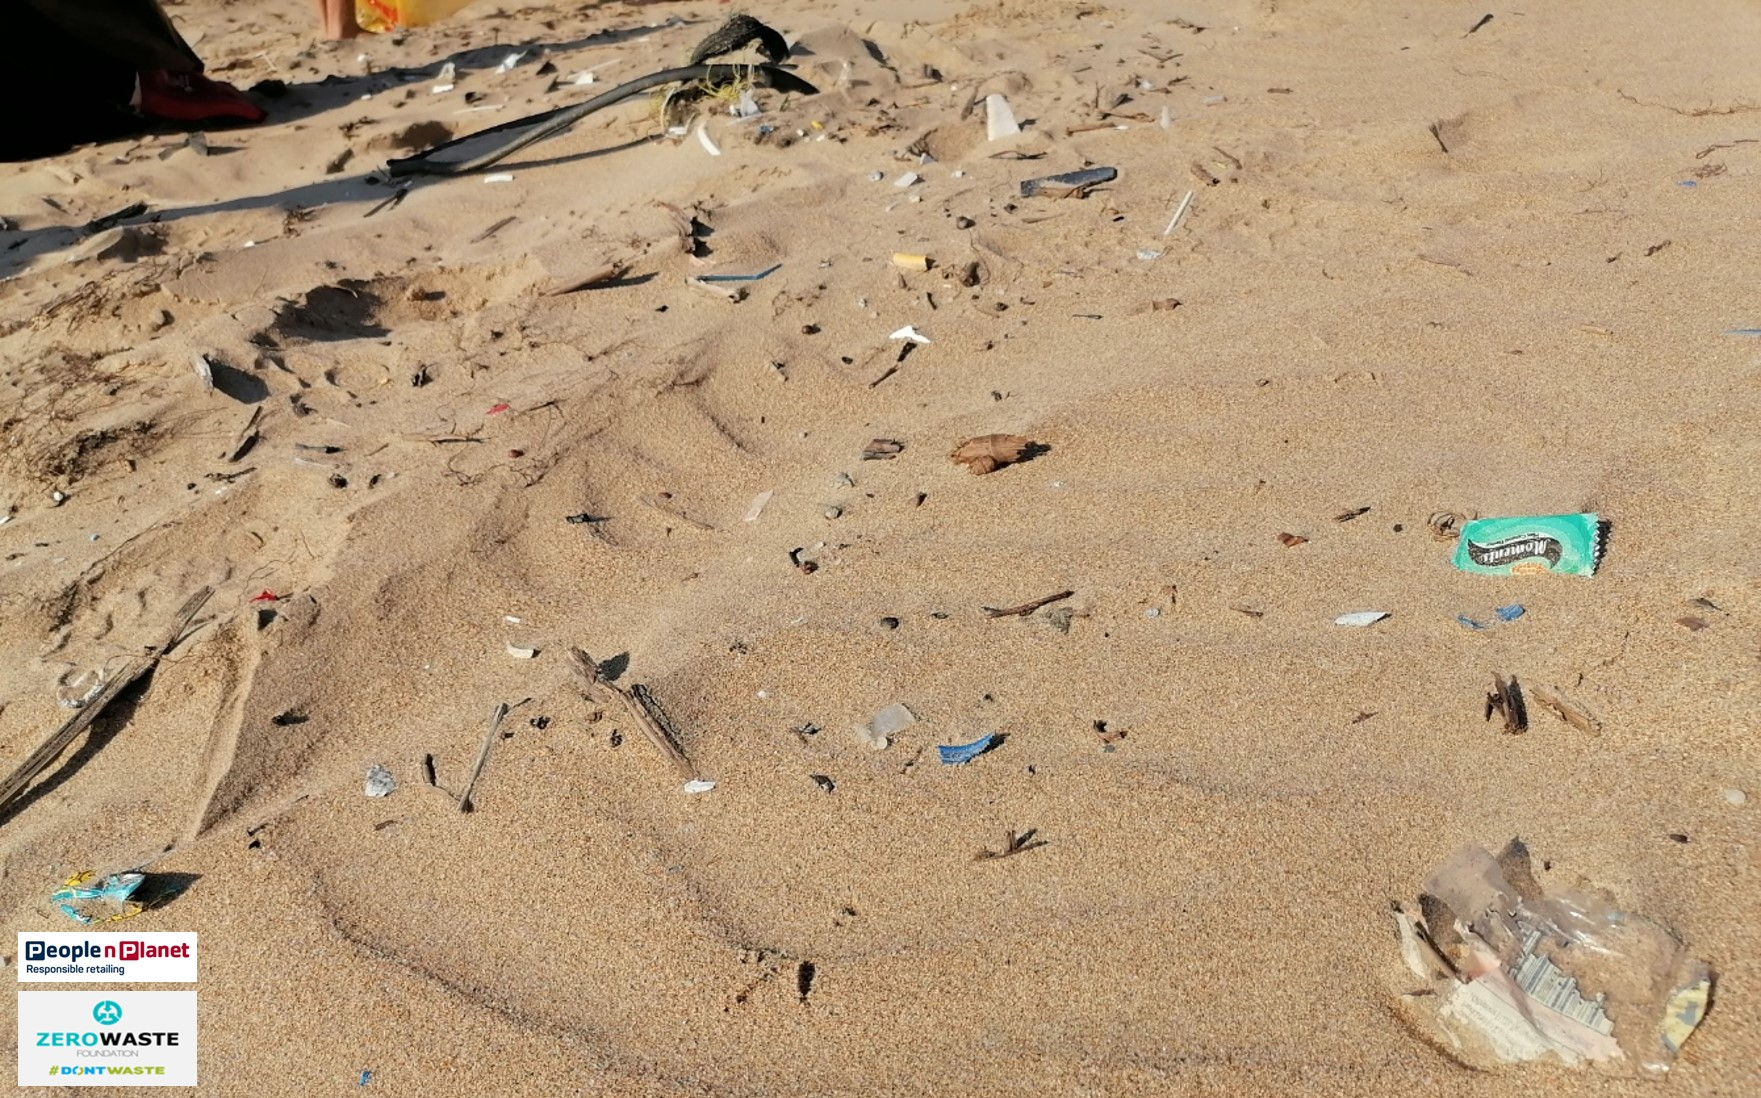 Country Club Beach Clean Up Don't Waste